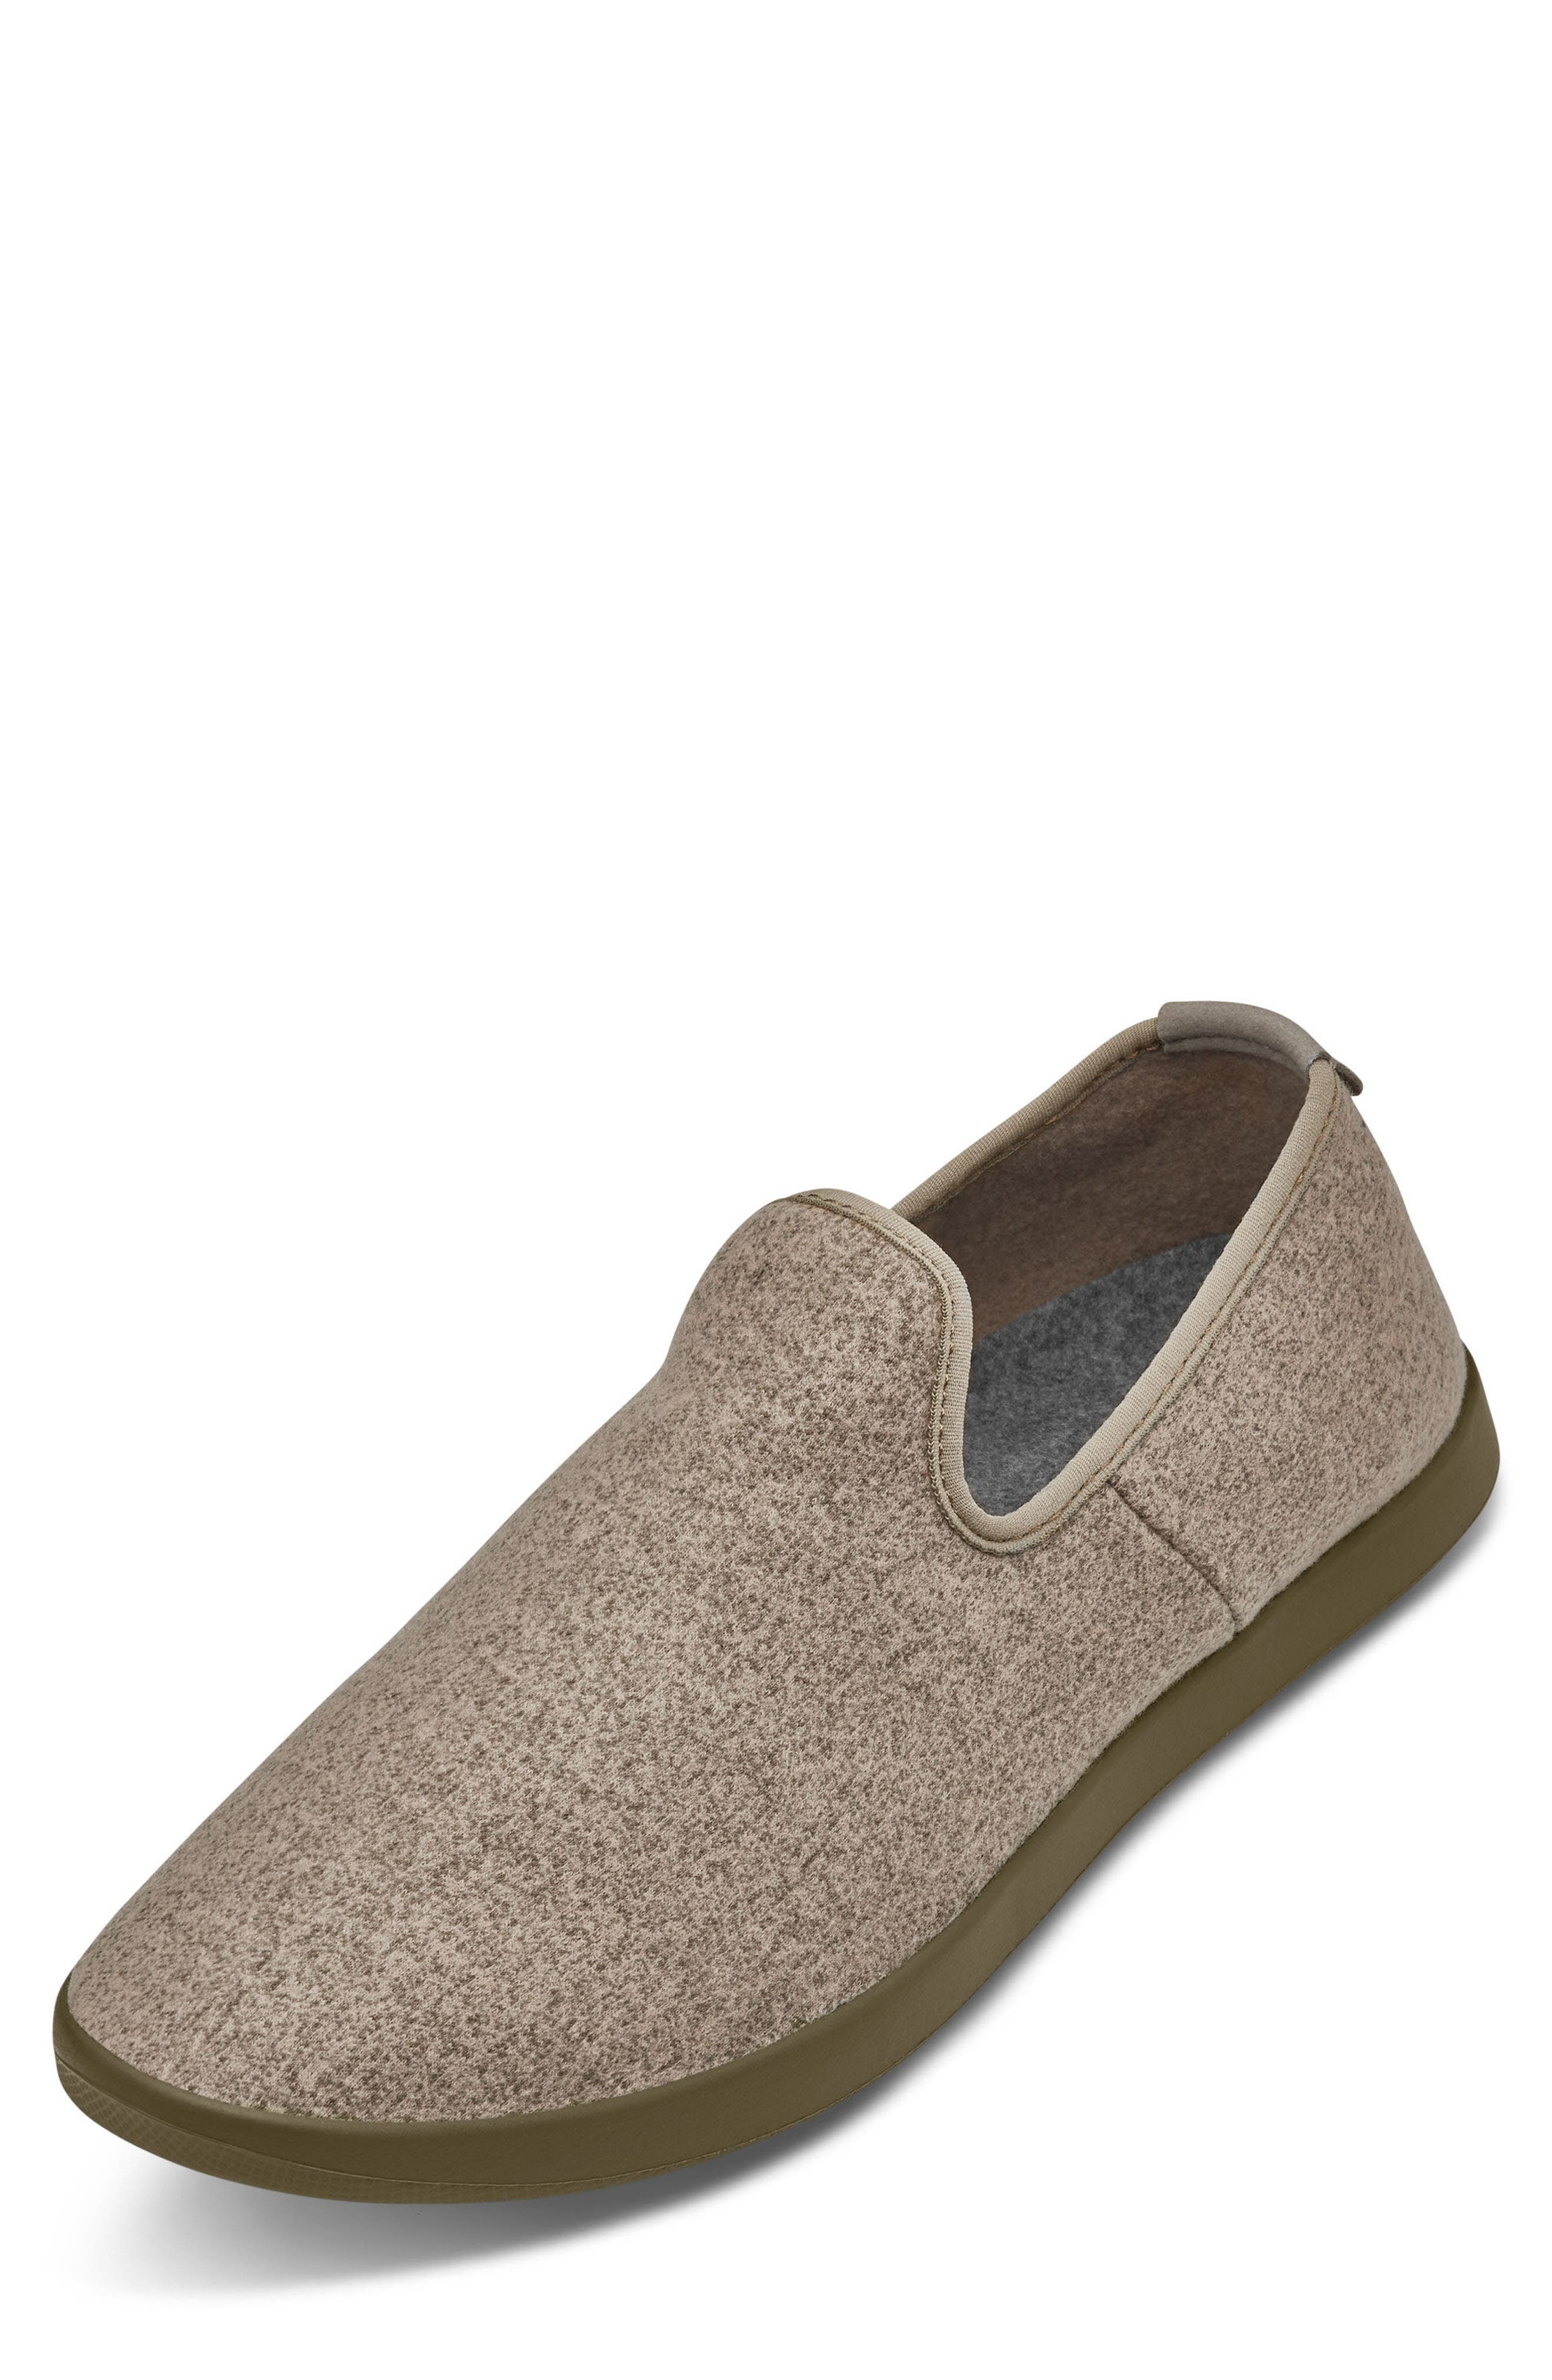 Wool Lounger,                         Main,                         color, Sage